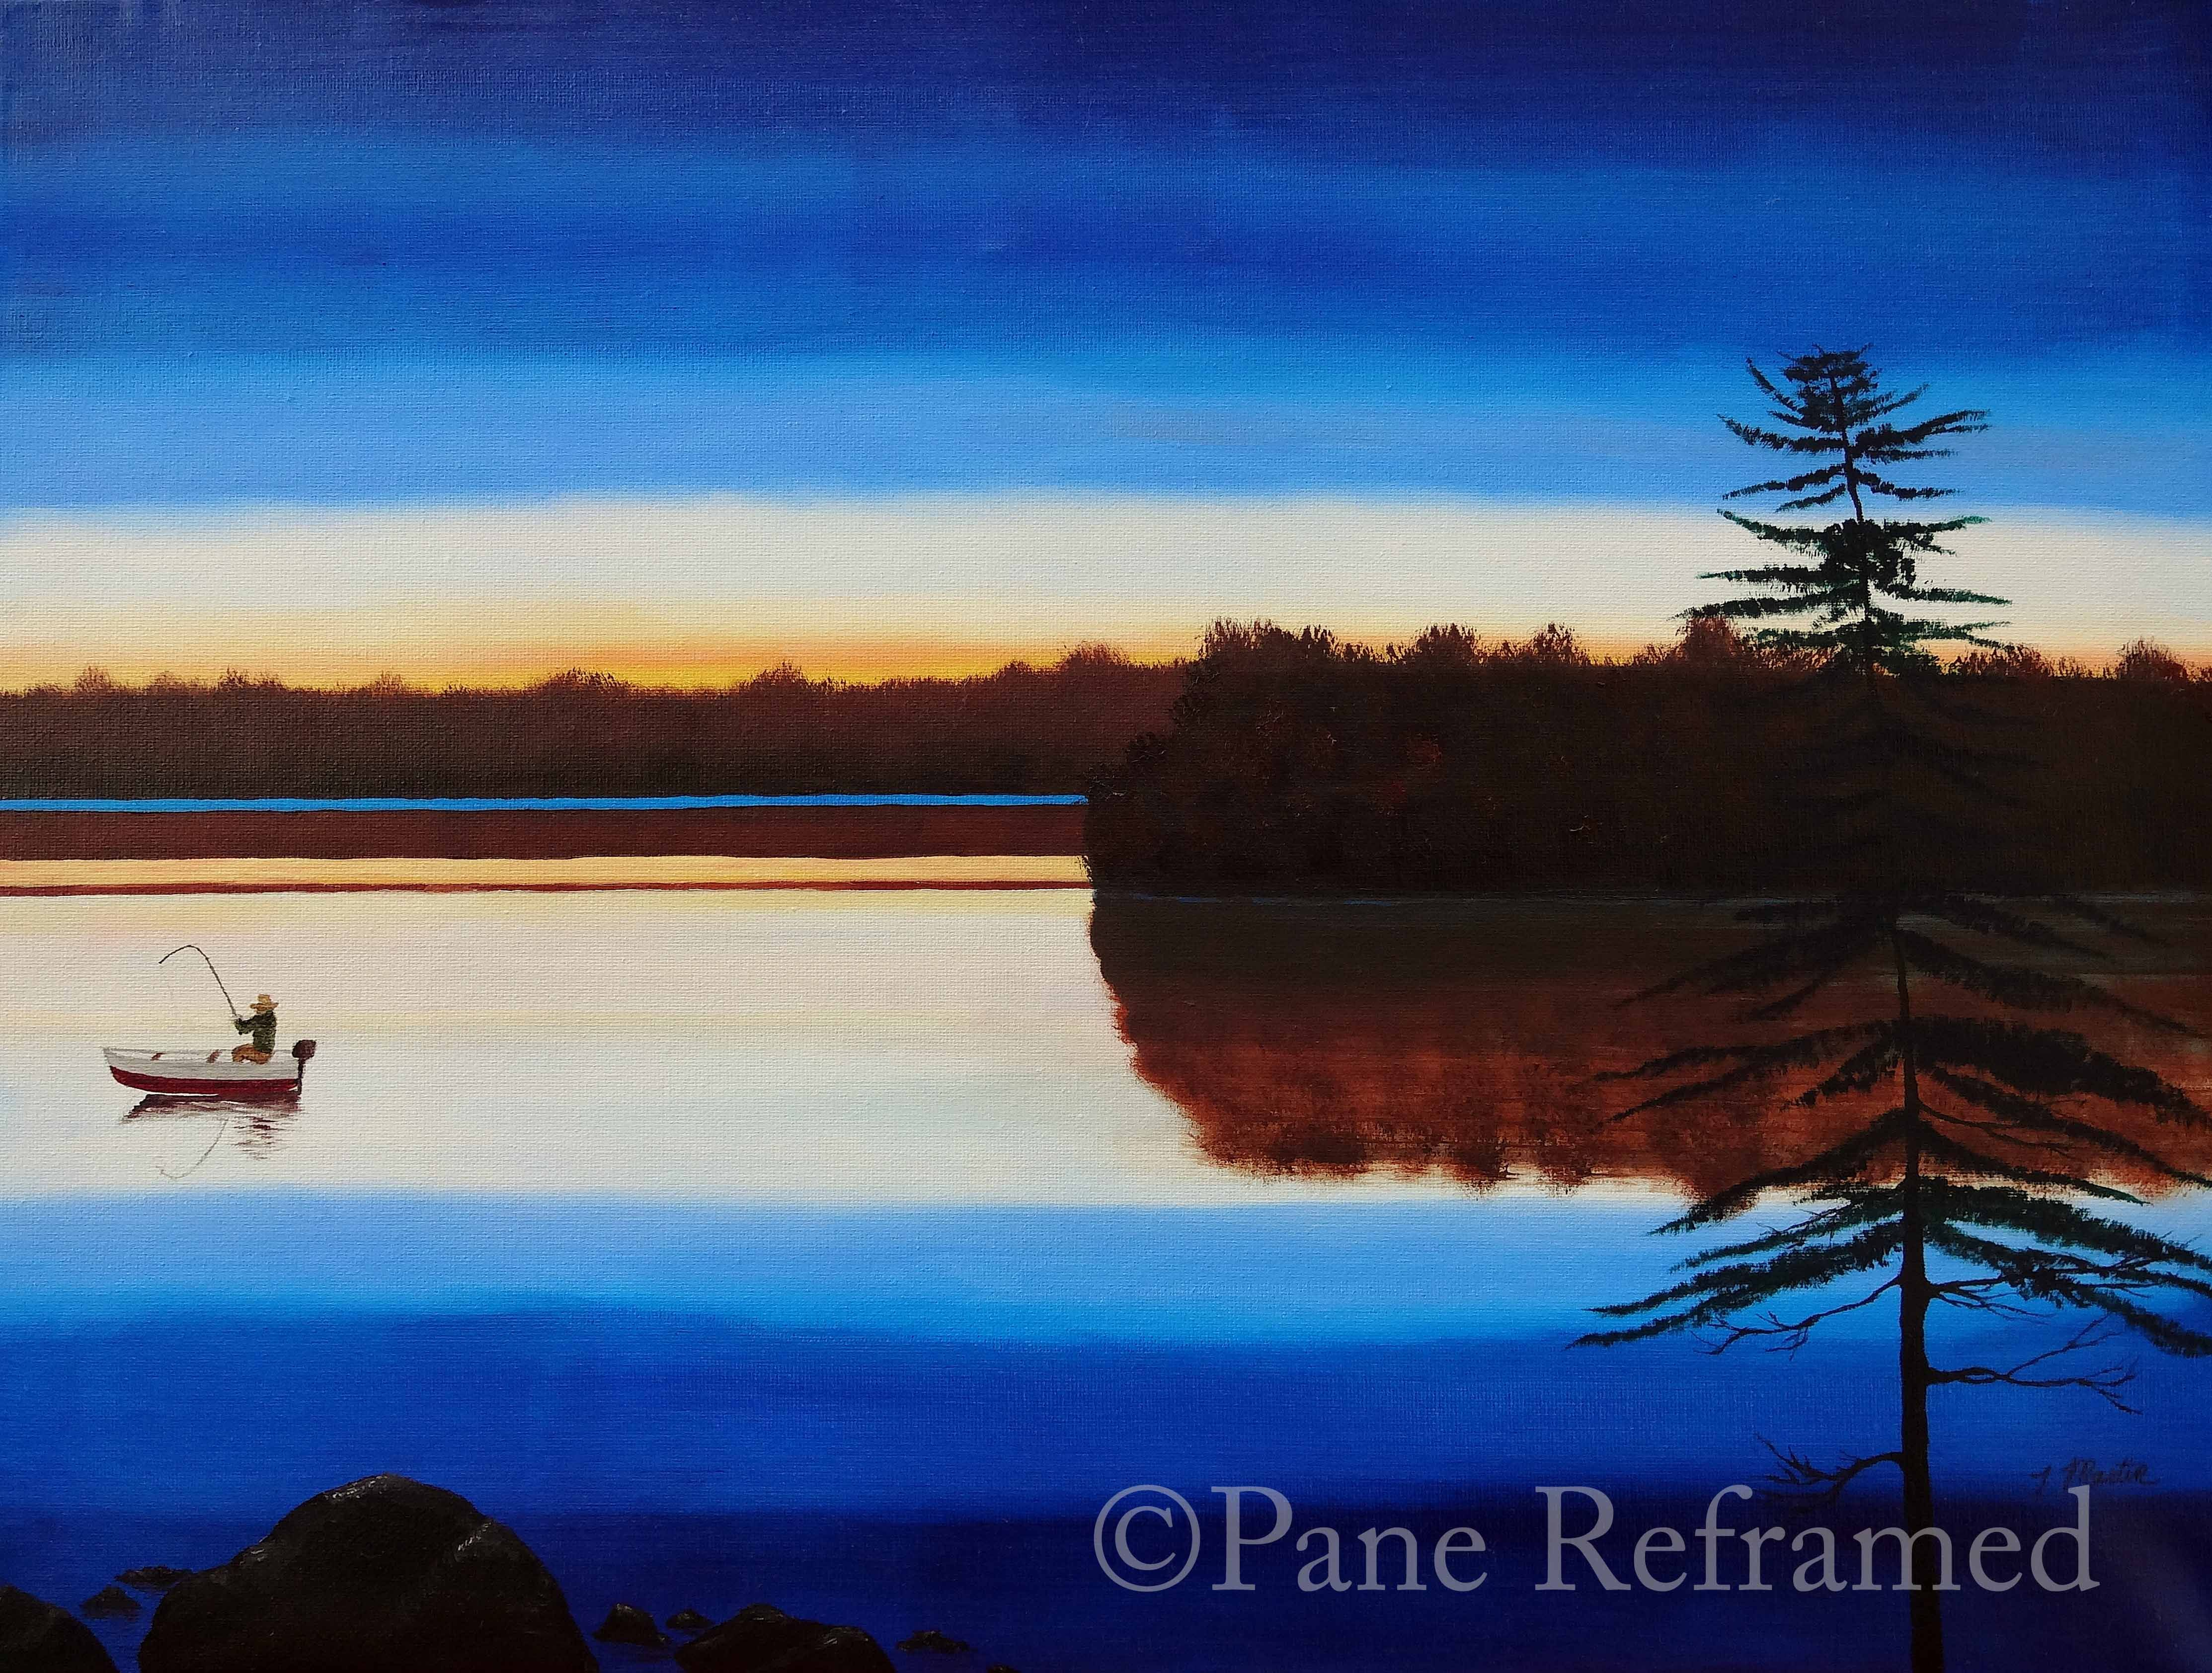 Oil painting prints available to purchase.